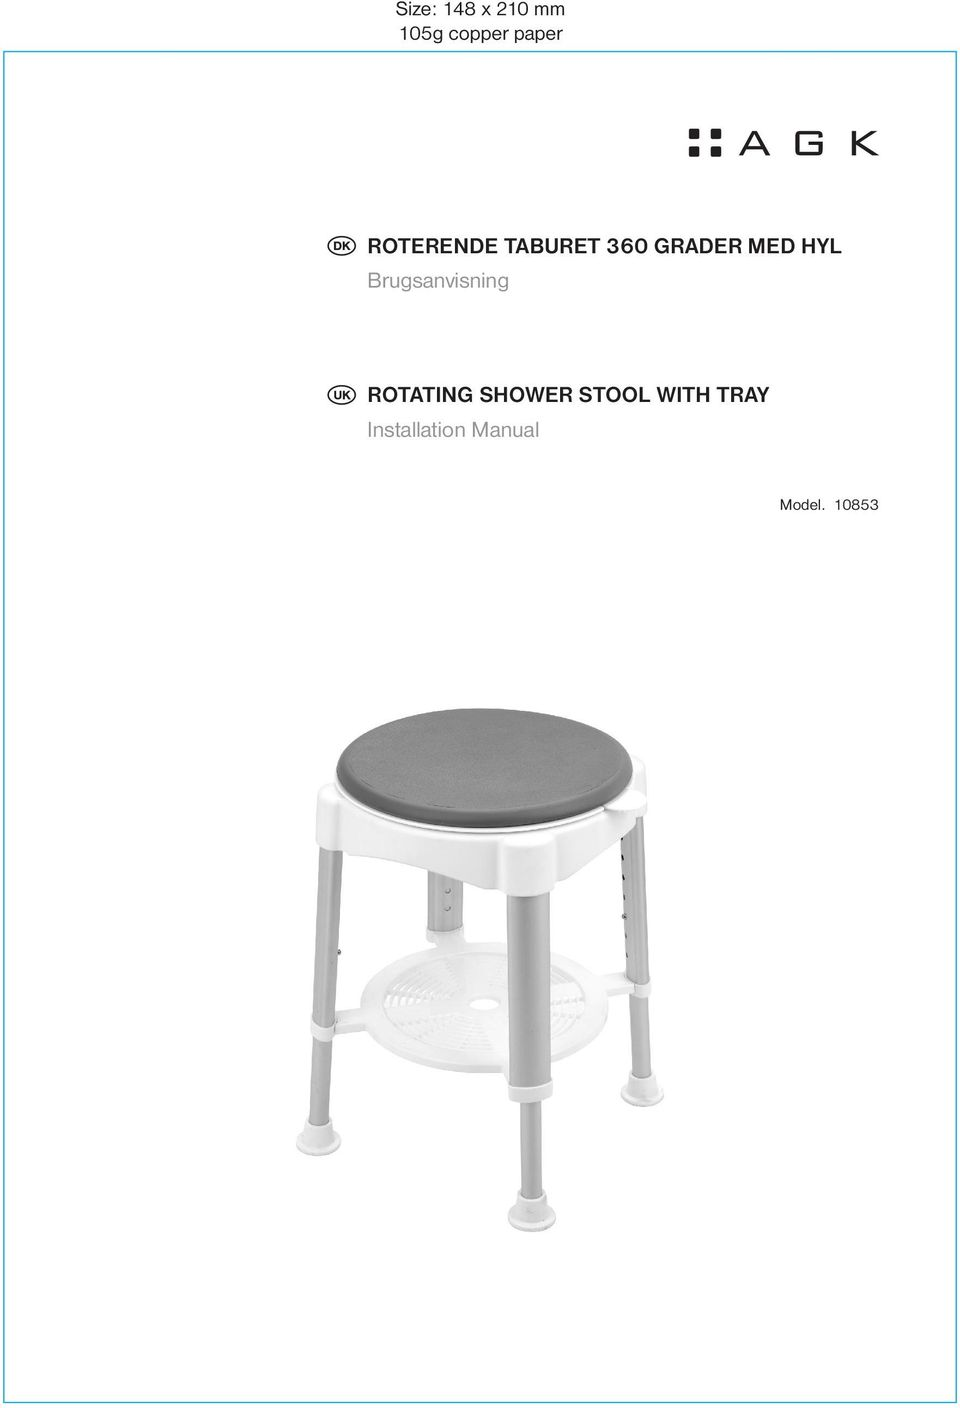 Brugsanvisning ROTATING SHOWER STOOL